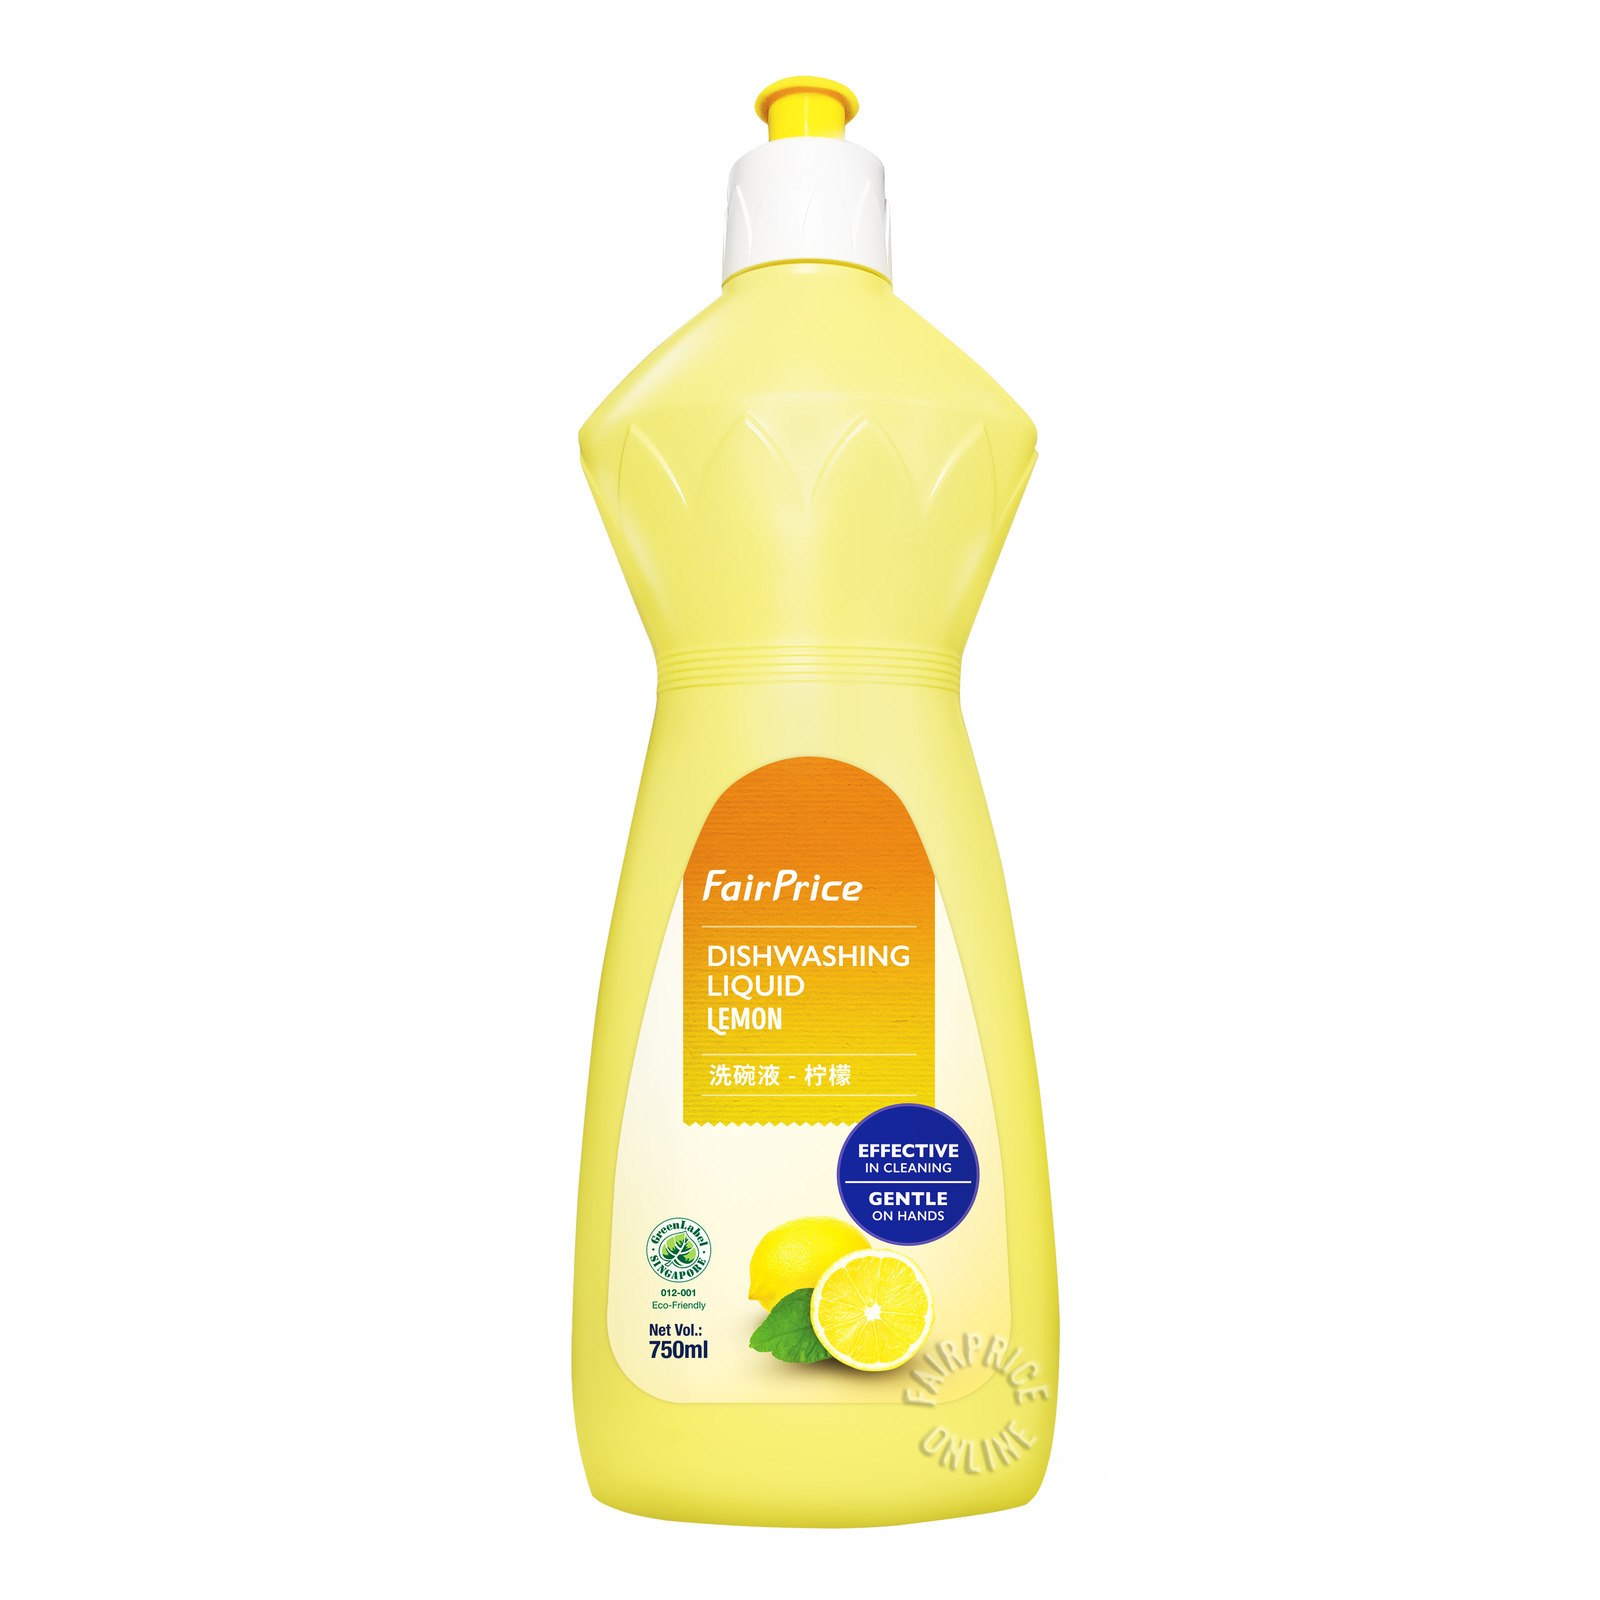 FairPrice Dishwashing Liquid Detergent - Lemon